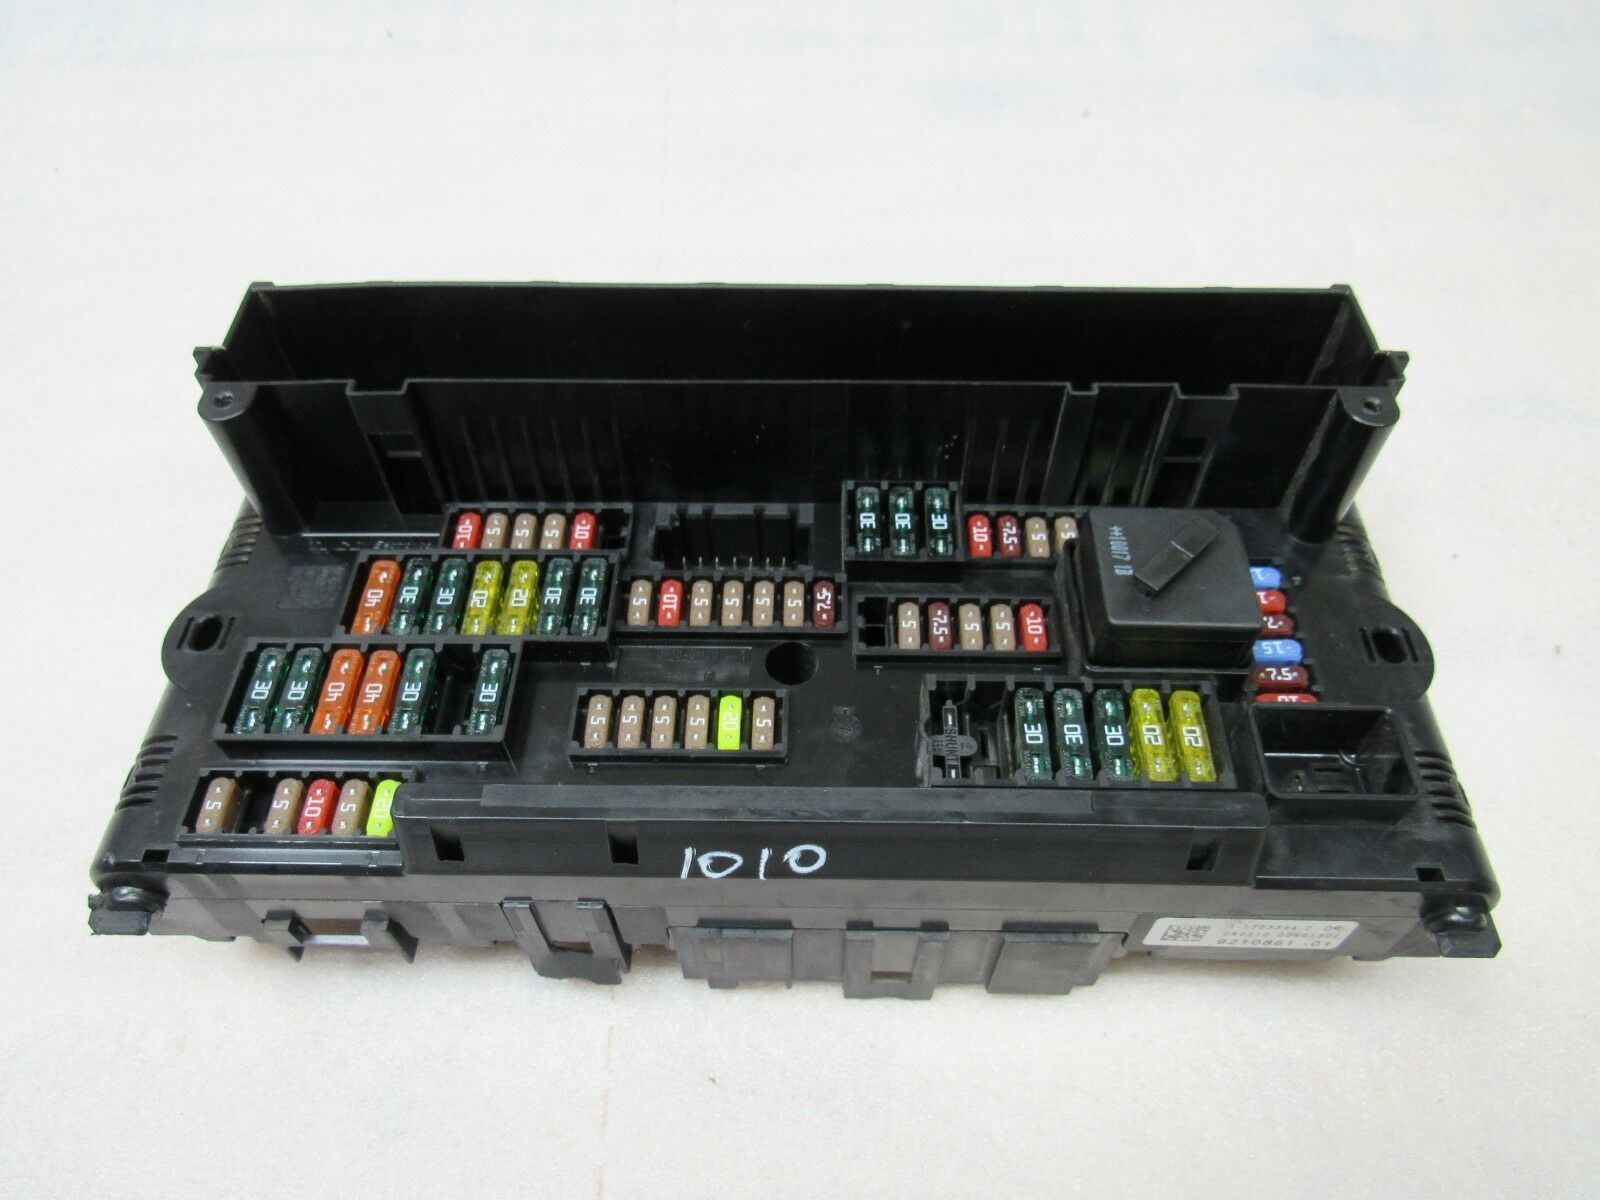 Used Bmw 740i Electric Vehicle Parts For Sale 740il Fuse Box F01 F10 F11 F07 528i 535i 550i 750i Front Power Distribution